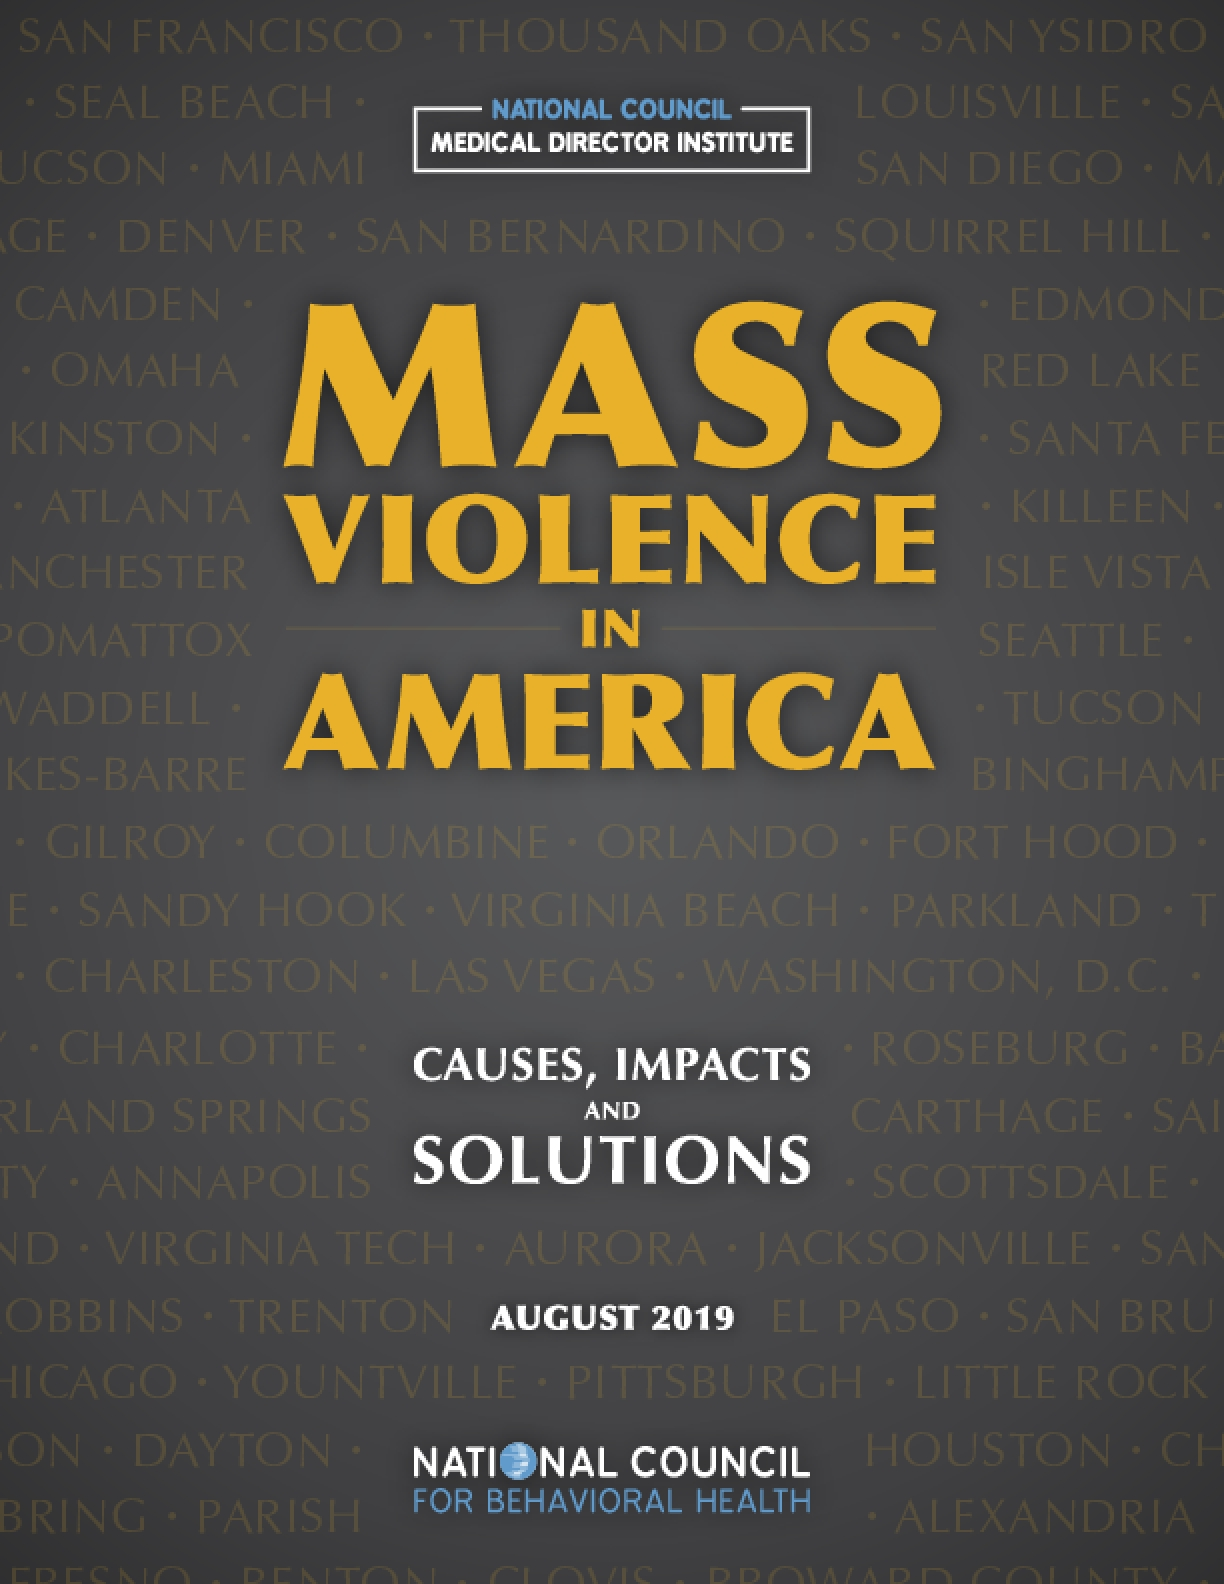 Mass Violence in America: Causes, Impacts, and Solutions